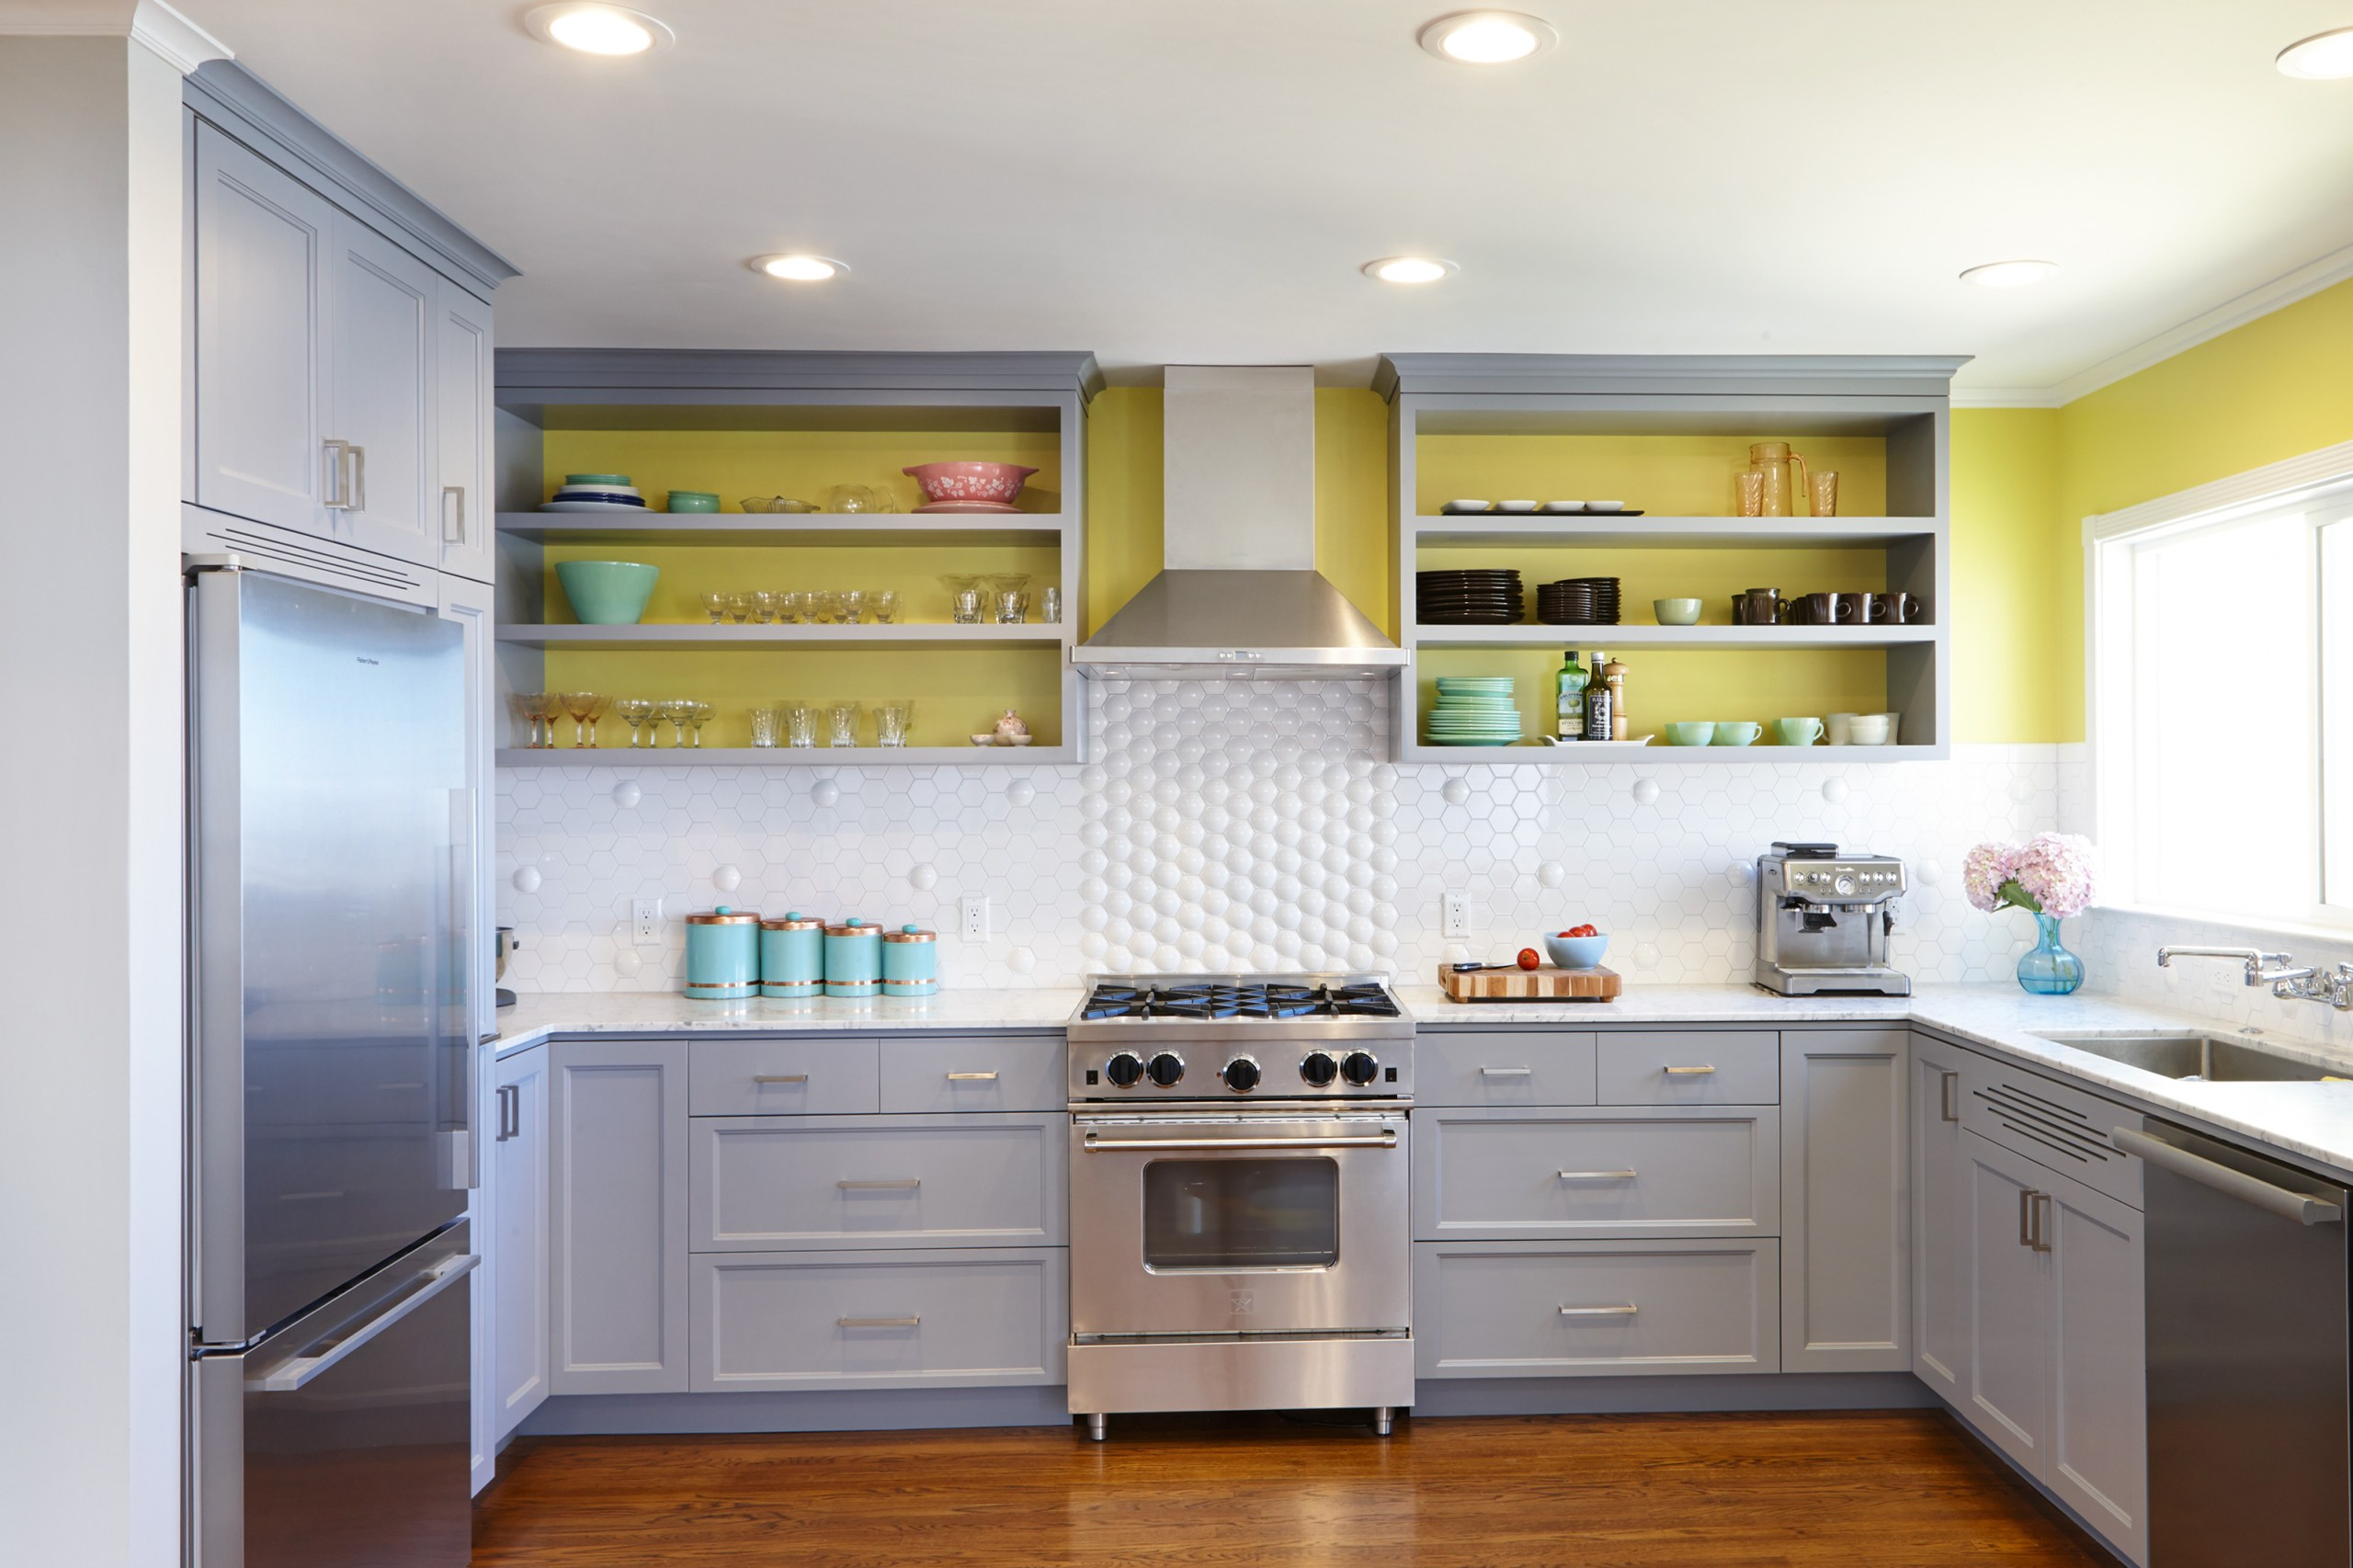 best paint for kitchen cabinets paint for kitchens on best paint for kitchen cabinets diy id=16554